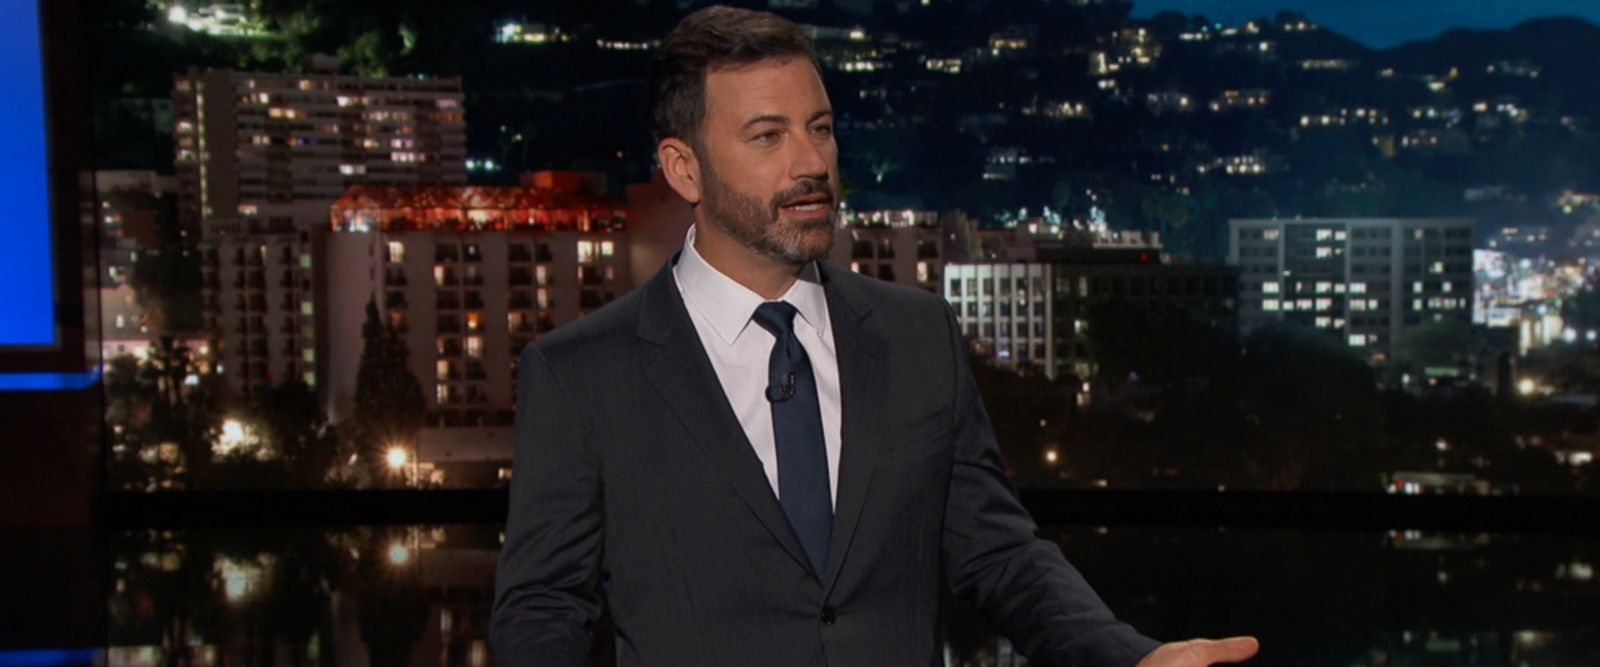 VIDEO: Jimmy Kimmel's war of words with Republican leaders over the party's latest proposed health care legislation continued Thursday night.